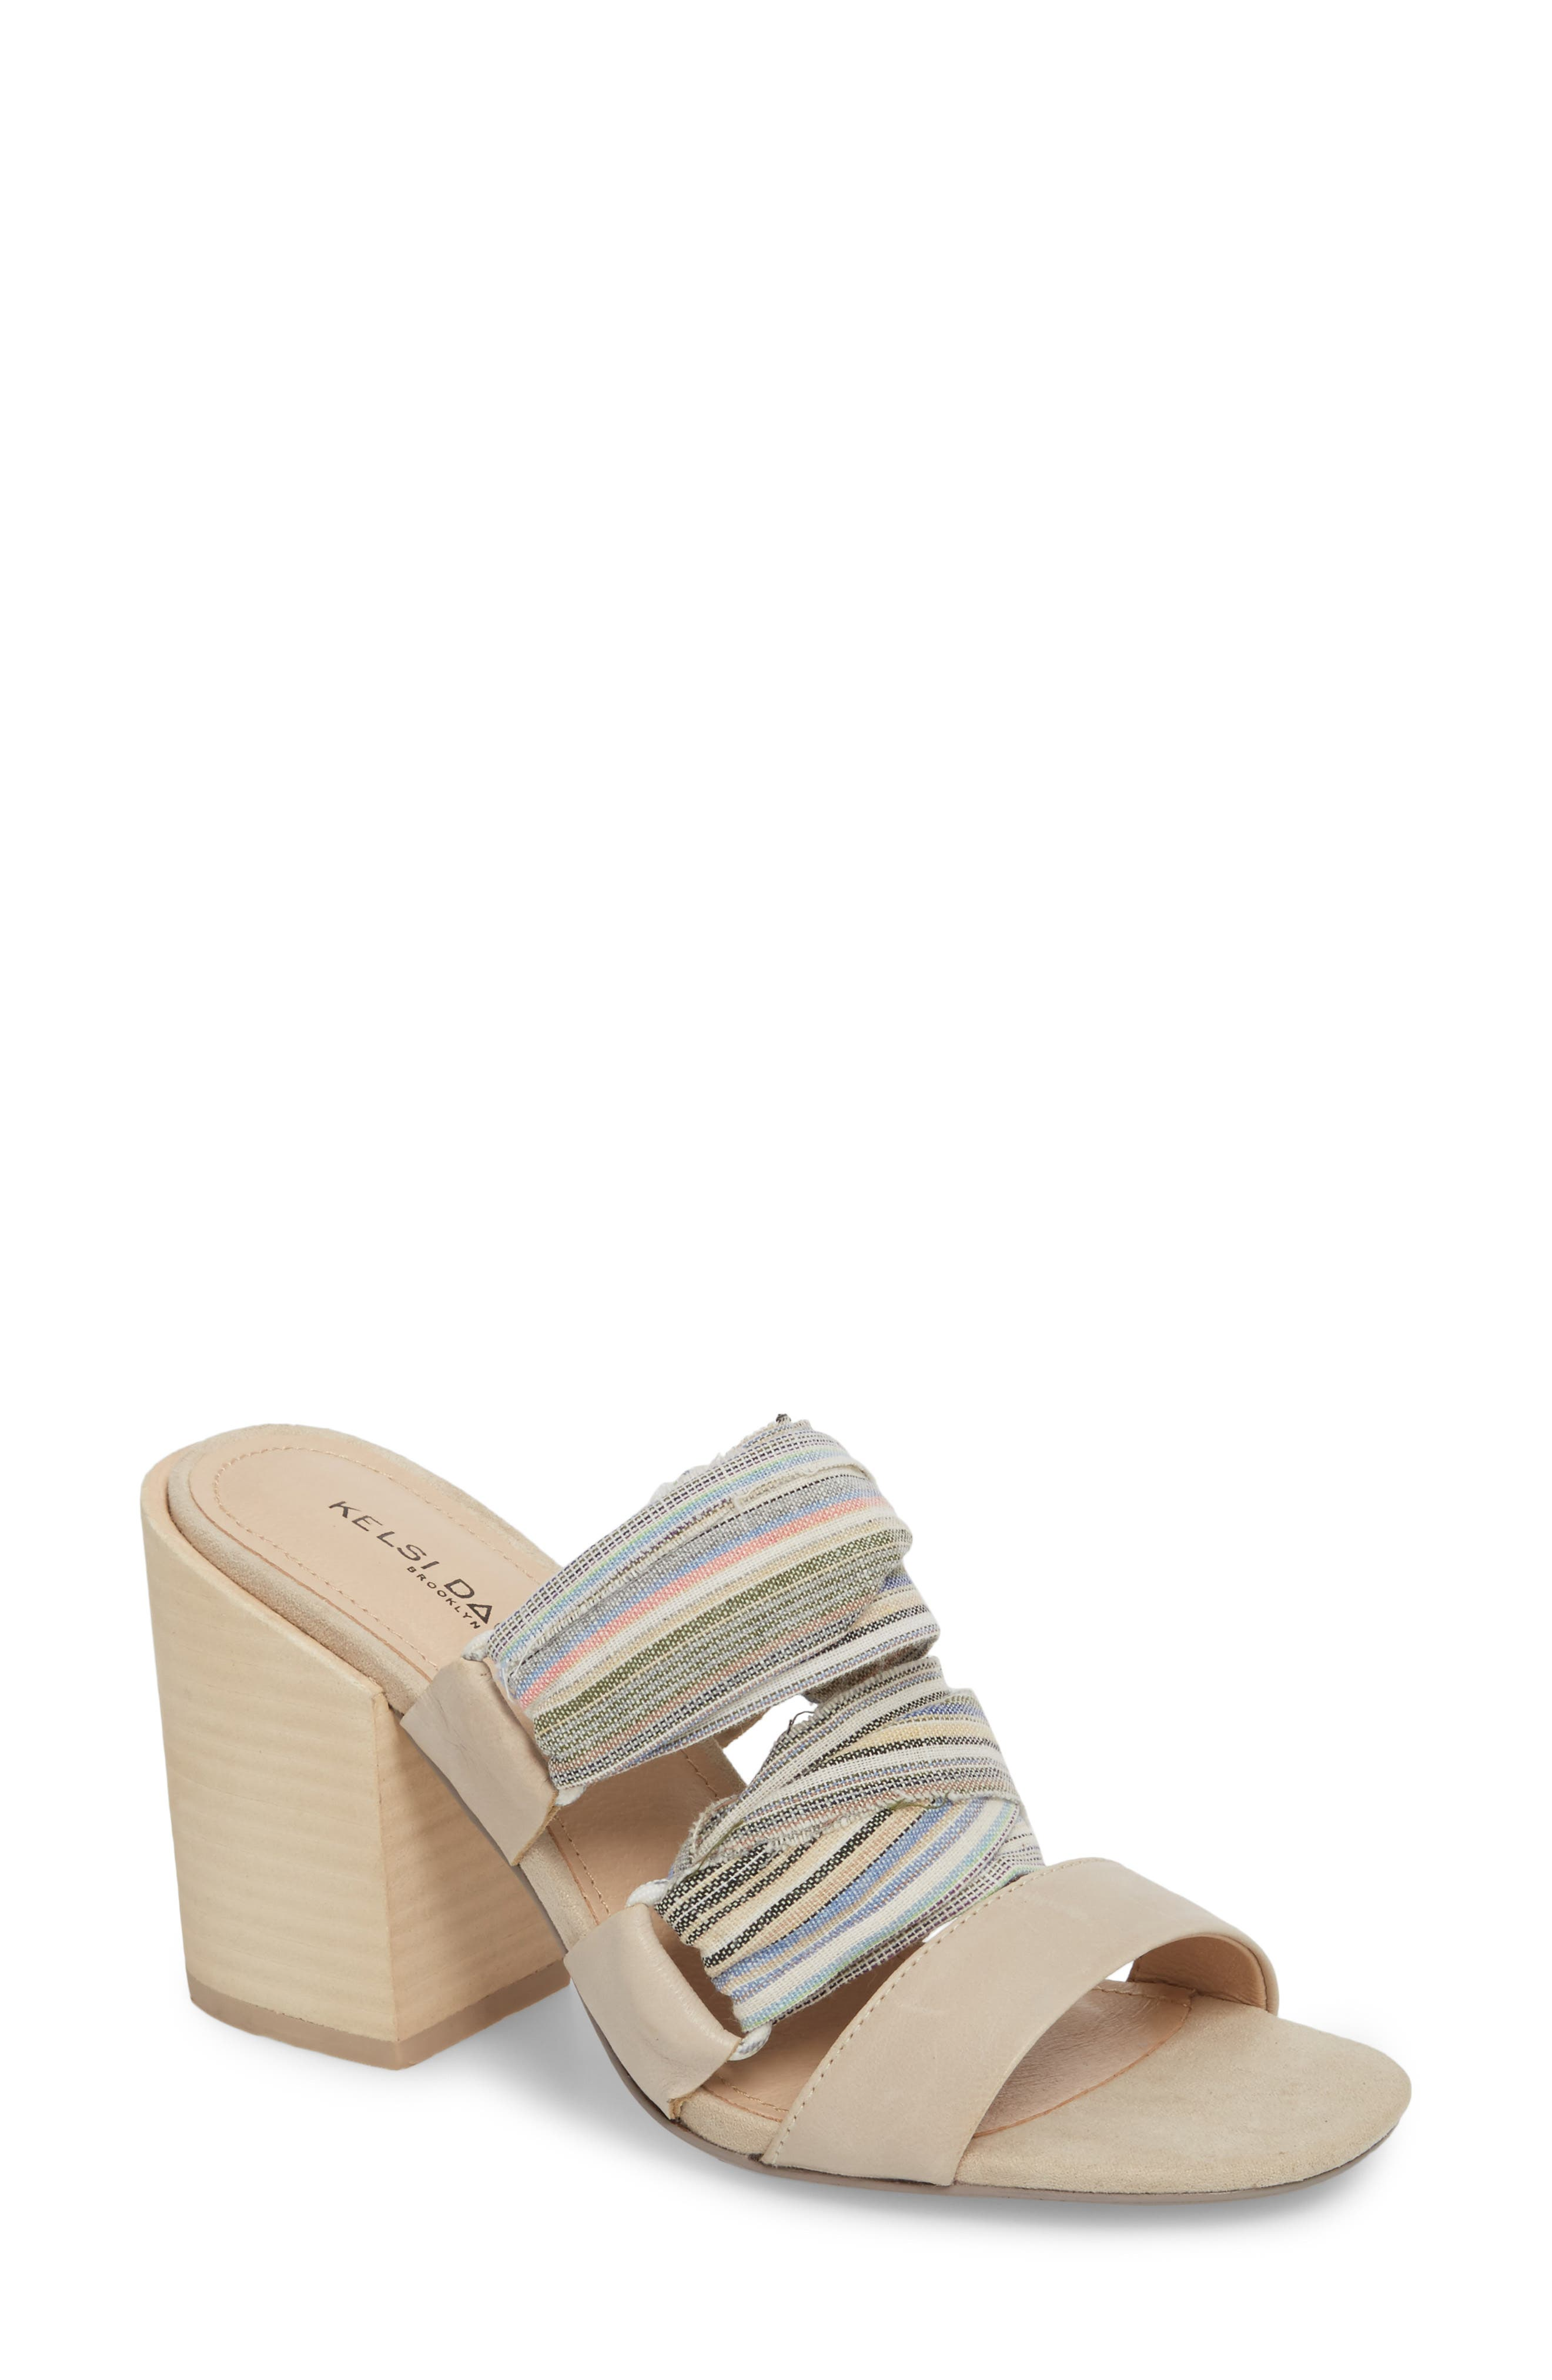 Monaco Block Heel Sandal,                         Main,                         color, Bone/ Multi